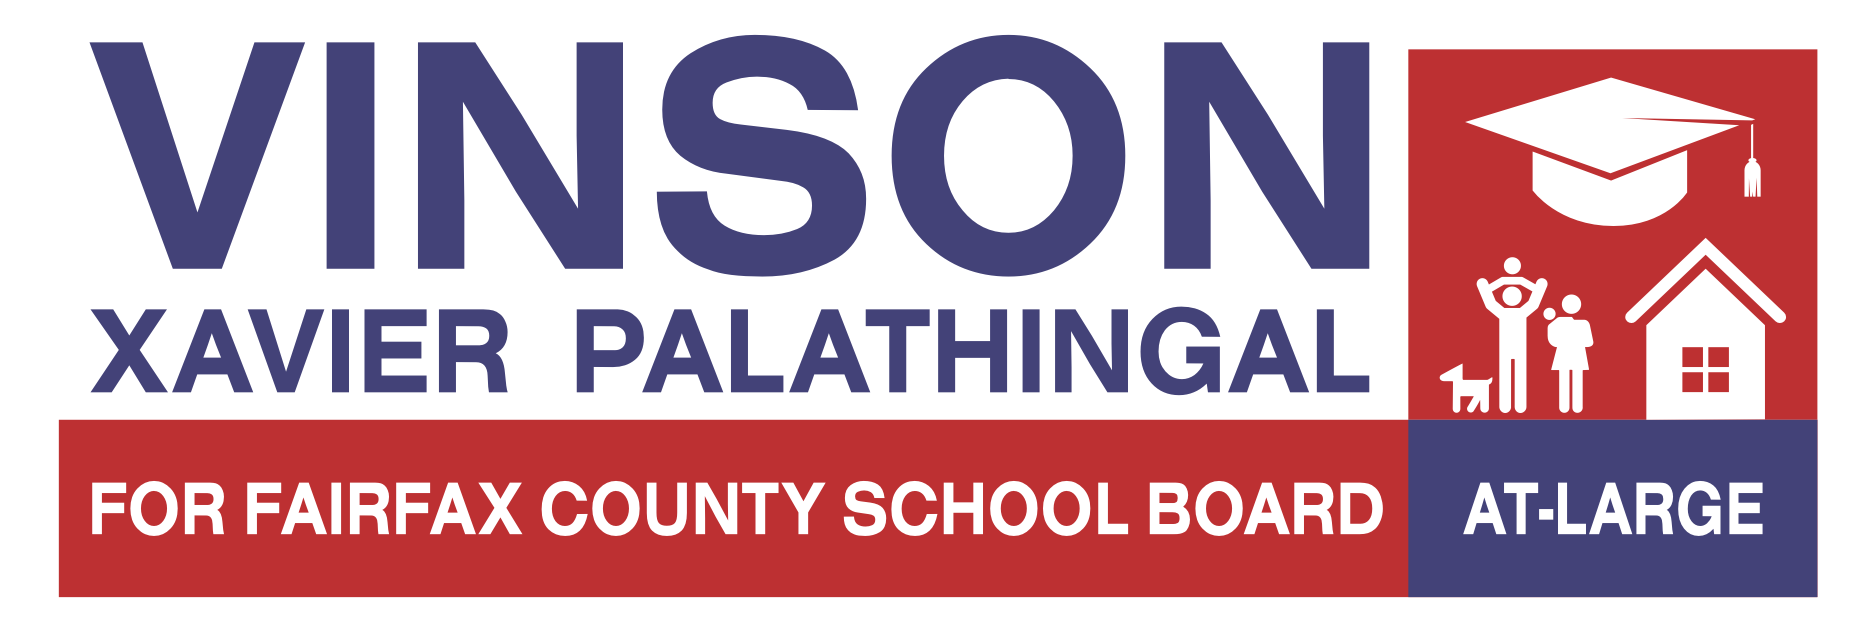 Vinson Xavier Palathingal - Fairfax County School Board Election Candidate 2019